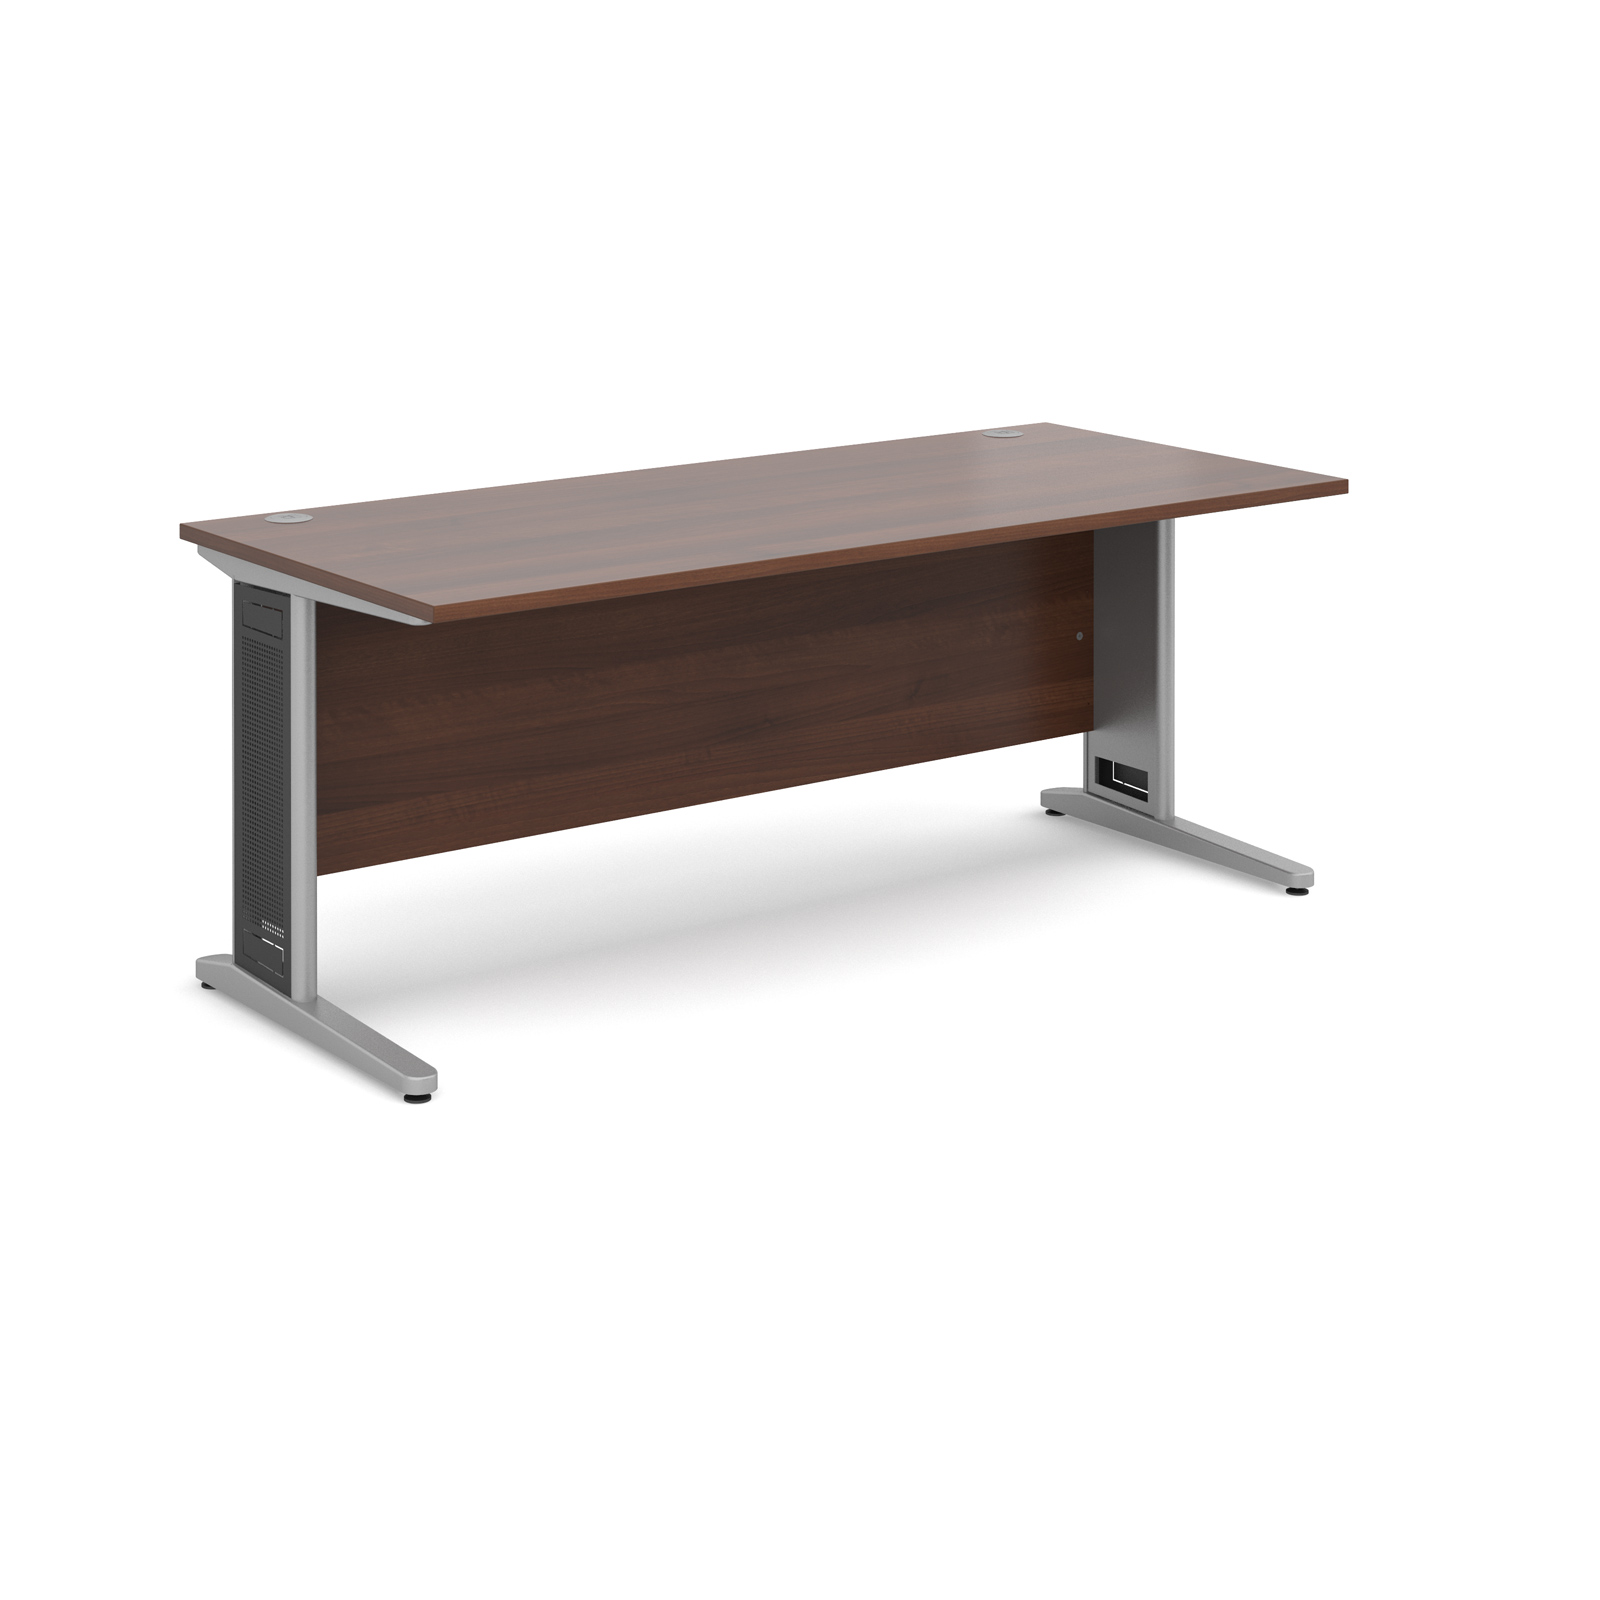 Largo straight desk 1800mm x 800mm - silver cantilever frame with removable grill, walnut top